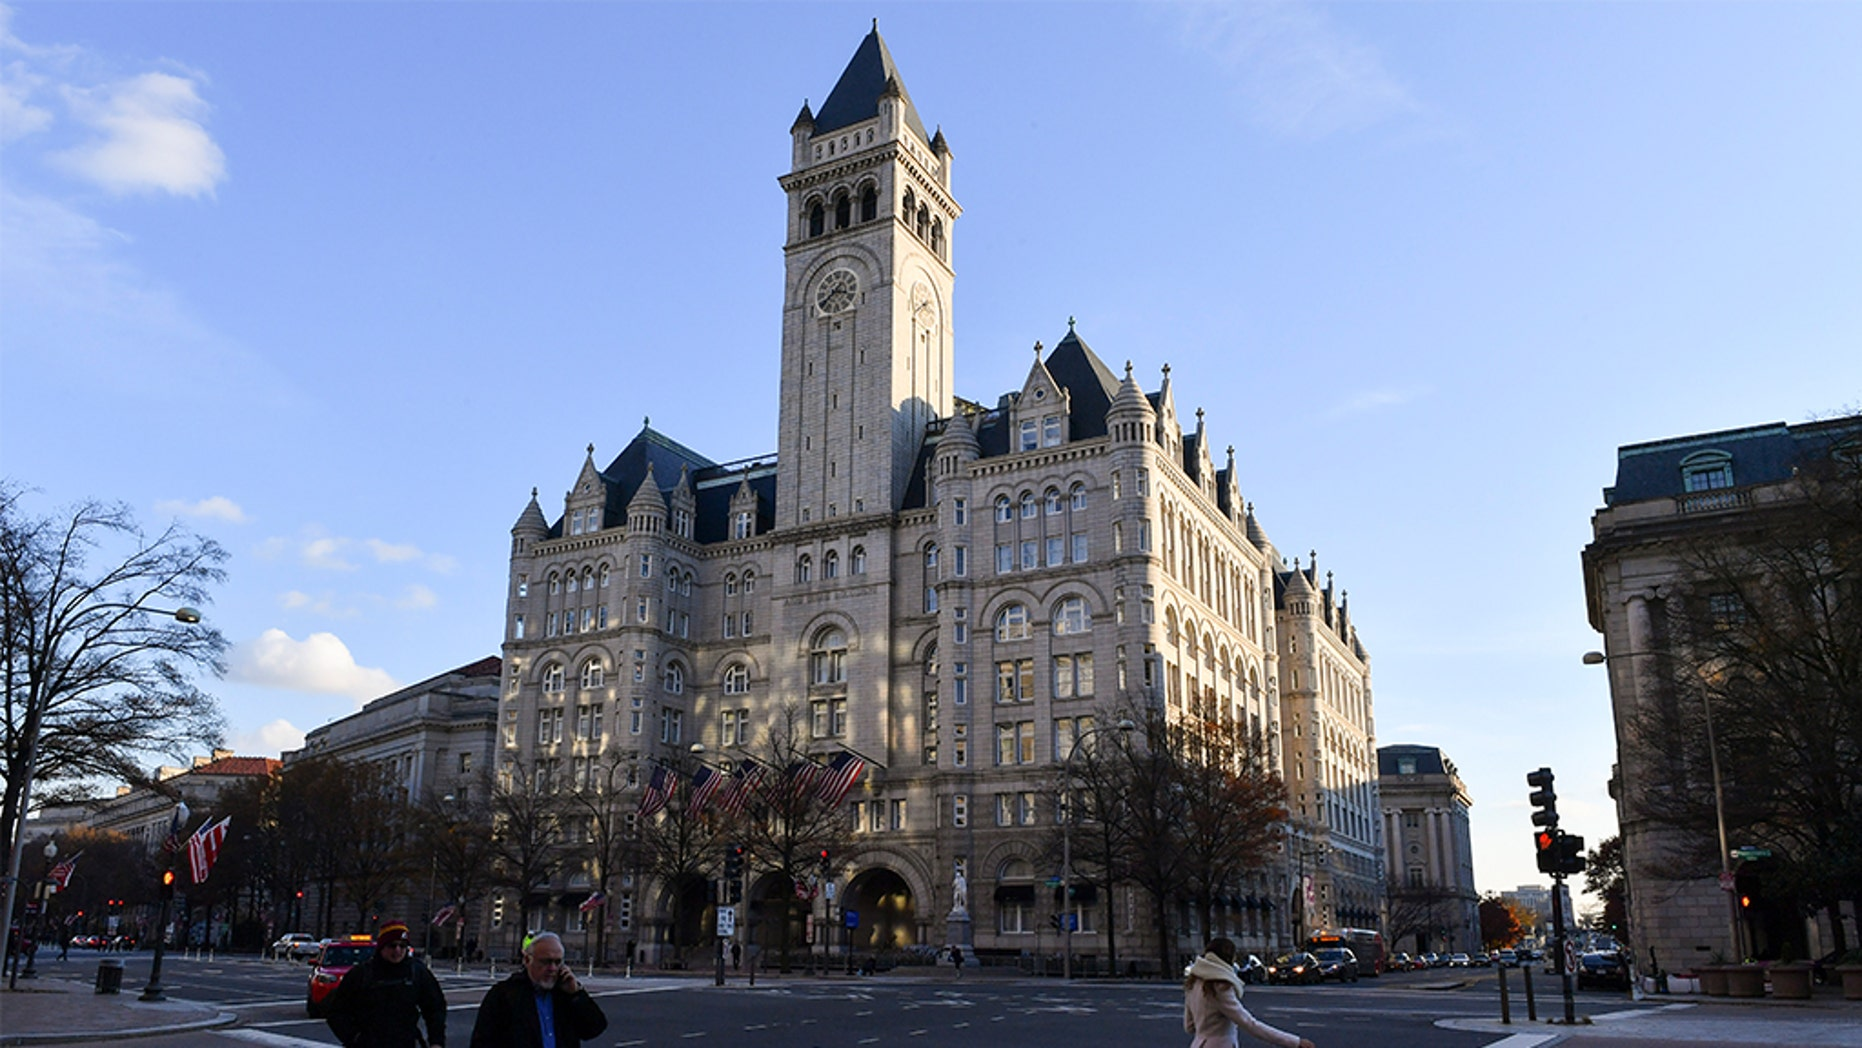 The inspector general for the General Services Administration says the agency improperly ignored the U.S. Constitution's emoluments provision outlawing foreign gifts when it approved President Trump's management of his Washington hotel soon after his 2016 election.(Ricky Carioti/The Washington Post via Getty Images, File)